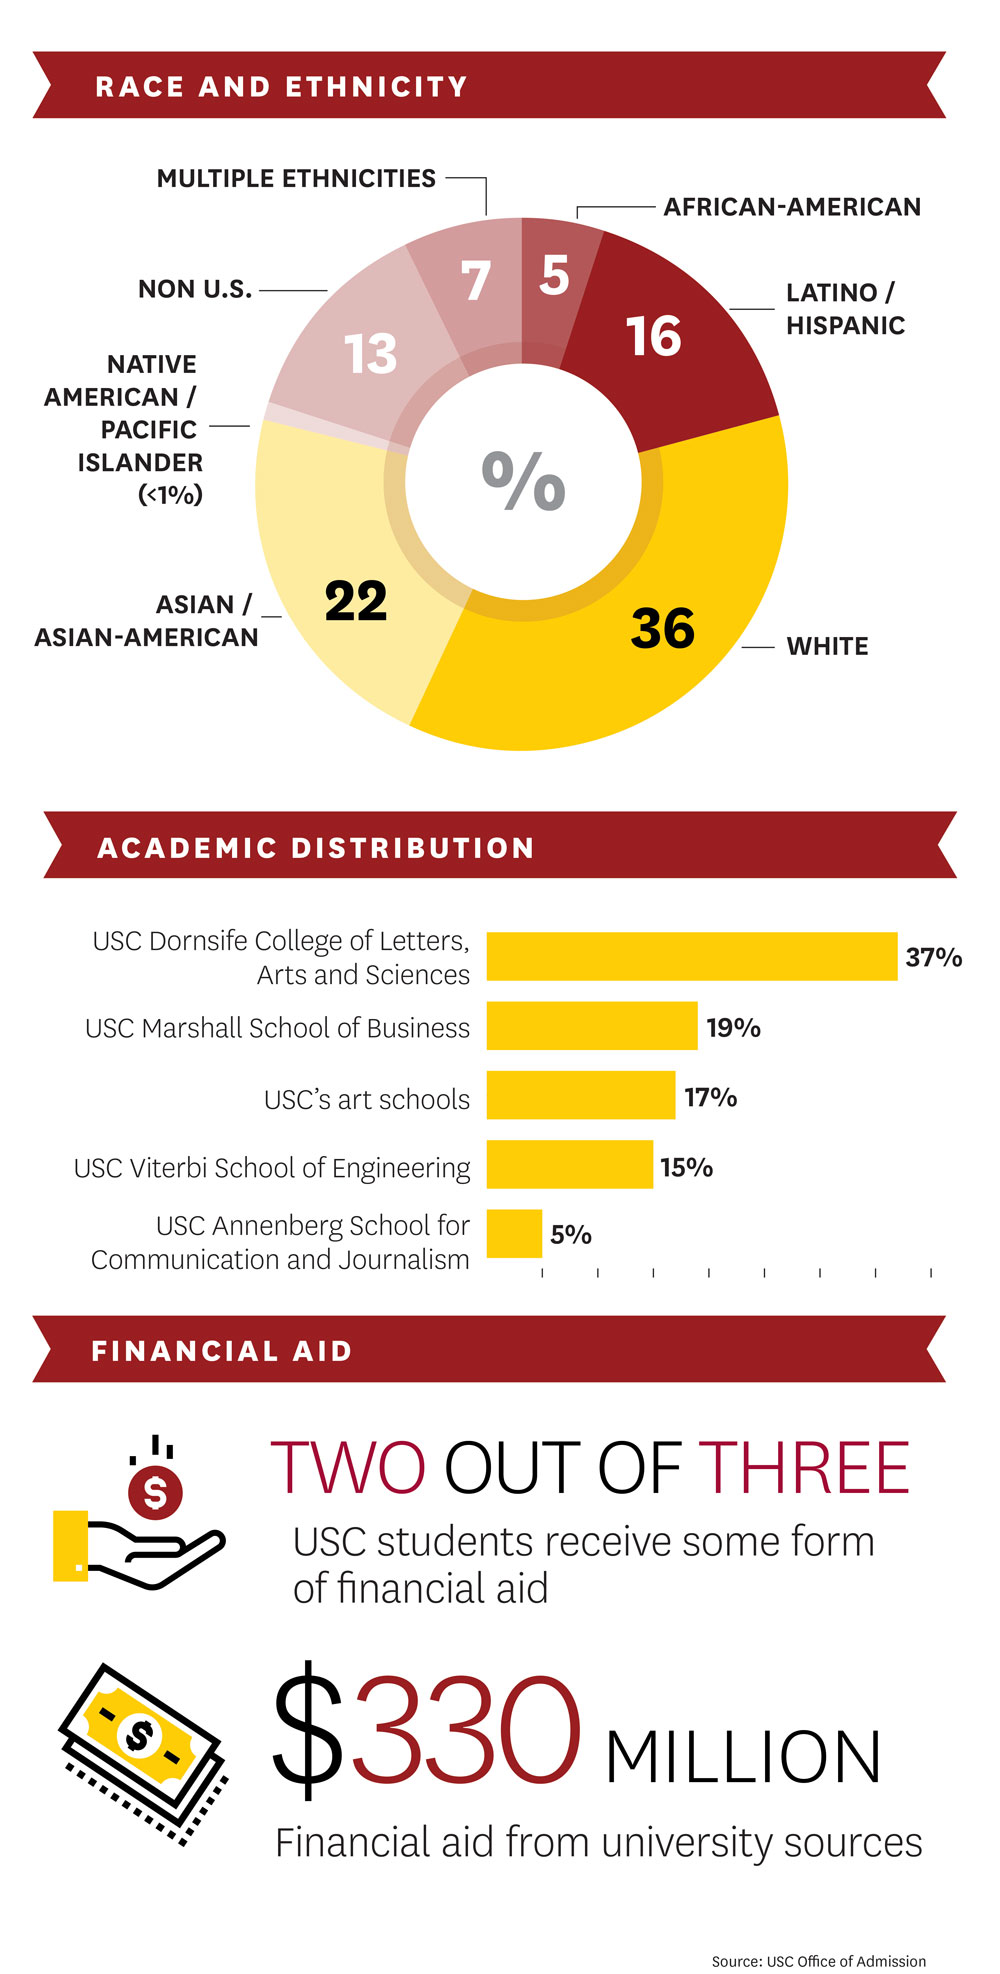 USC Class of 2022: Race and ethnicity, academic distribution, financial aid